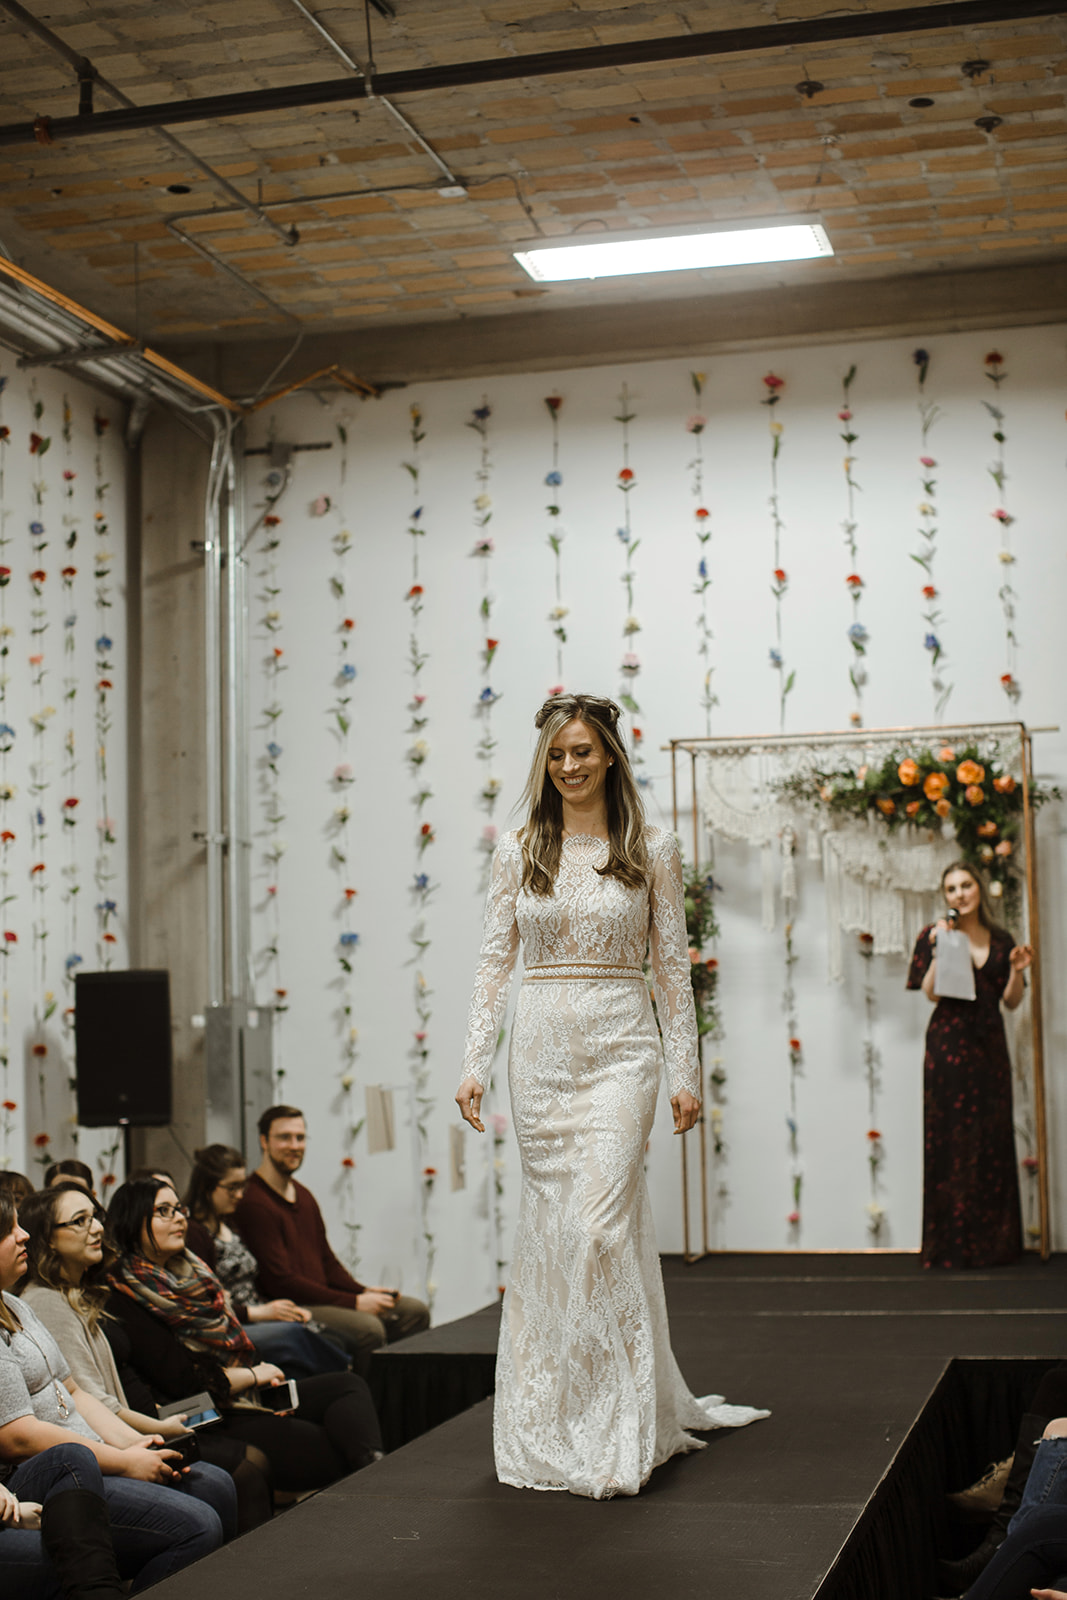 spokane wedding dress long sleeve fashion show bride runway